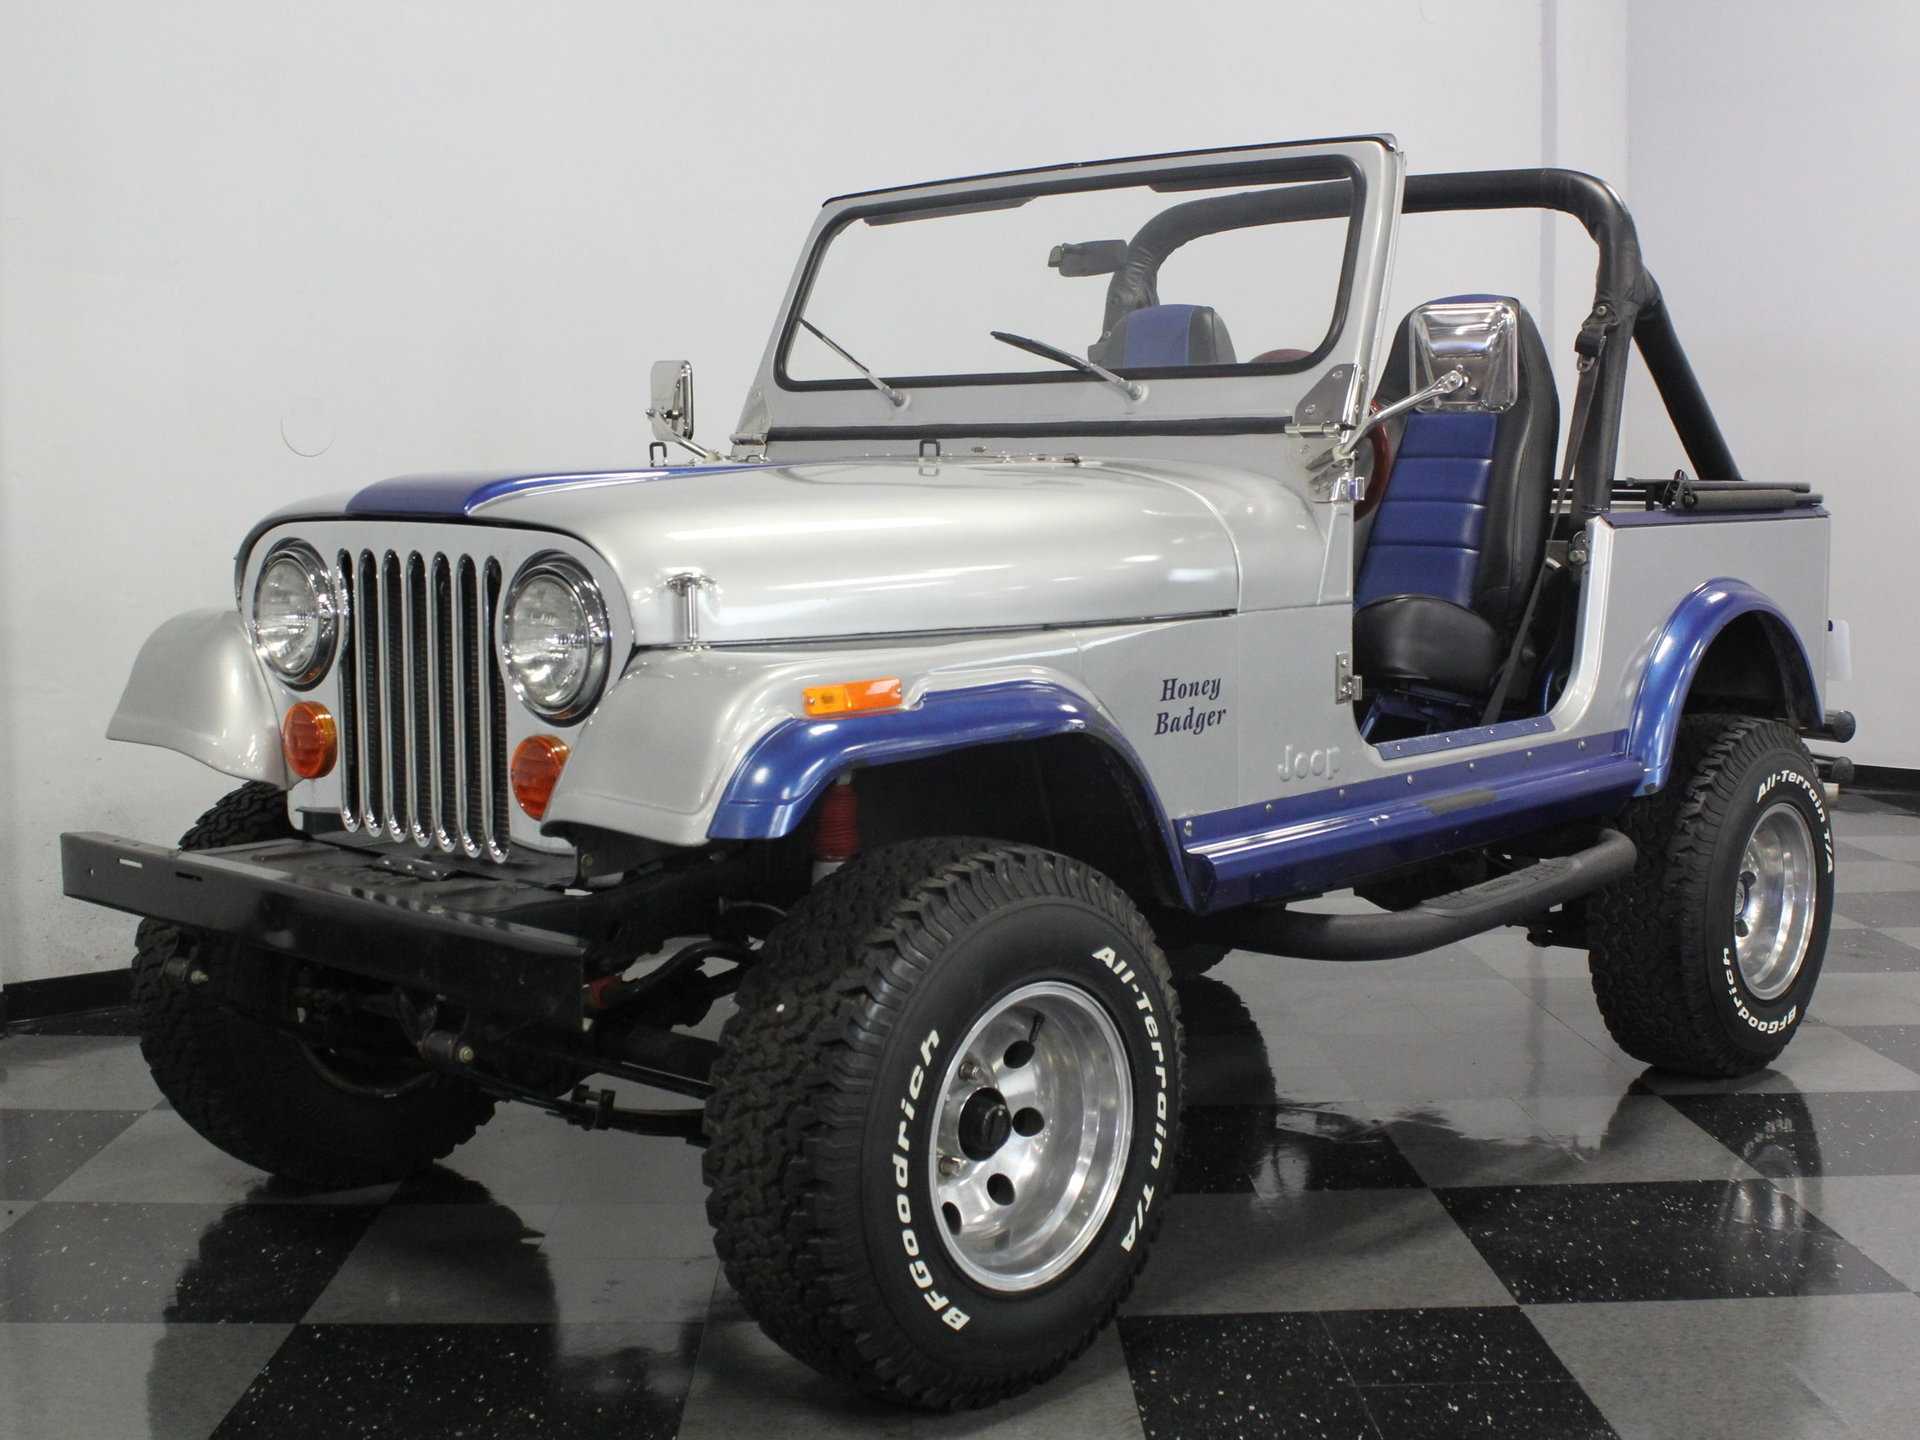 1985 Jeep Cj7 Streetside Classics The Nations Trusted Classic Subwoofer Show More Photos